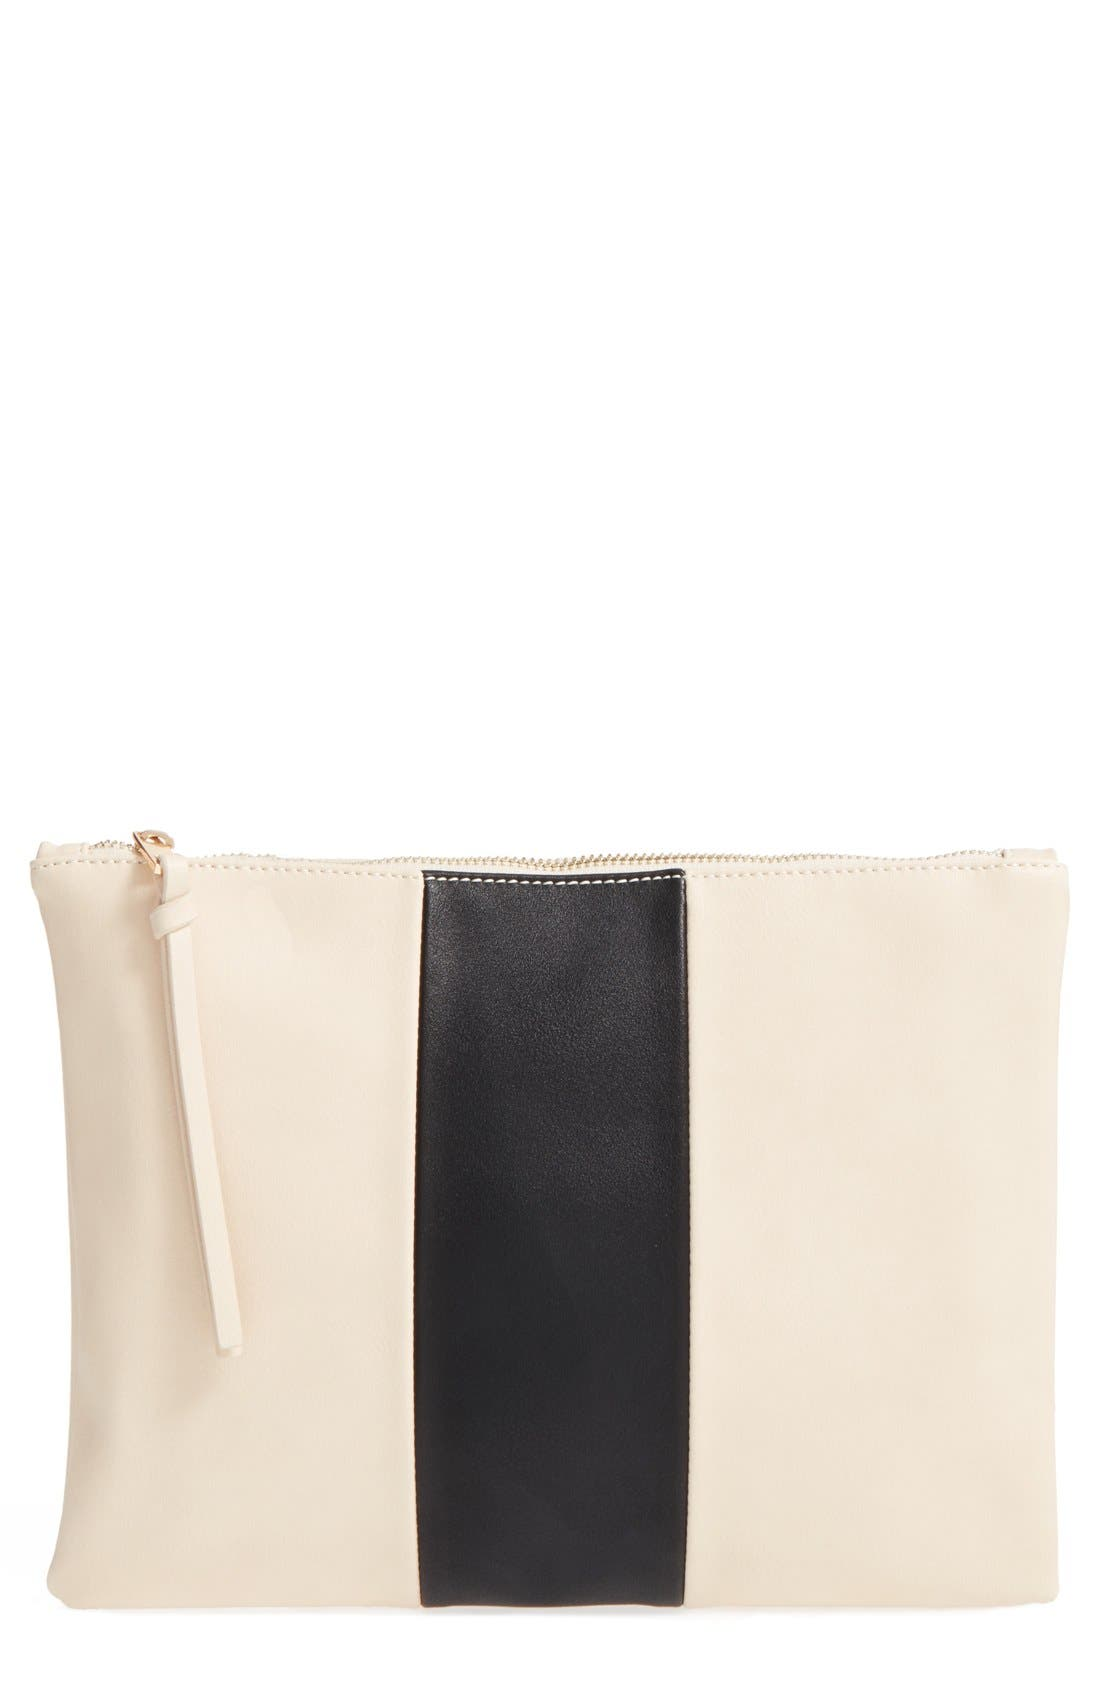 Main Image - Sole Society 'Radcliffe' Faux Leather Clutch